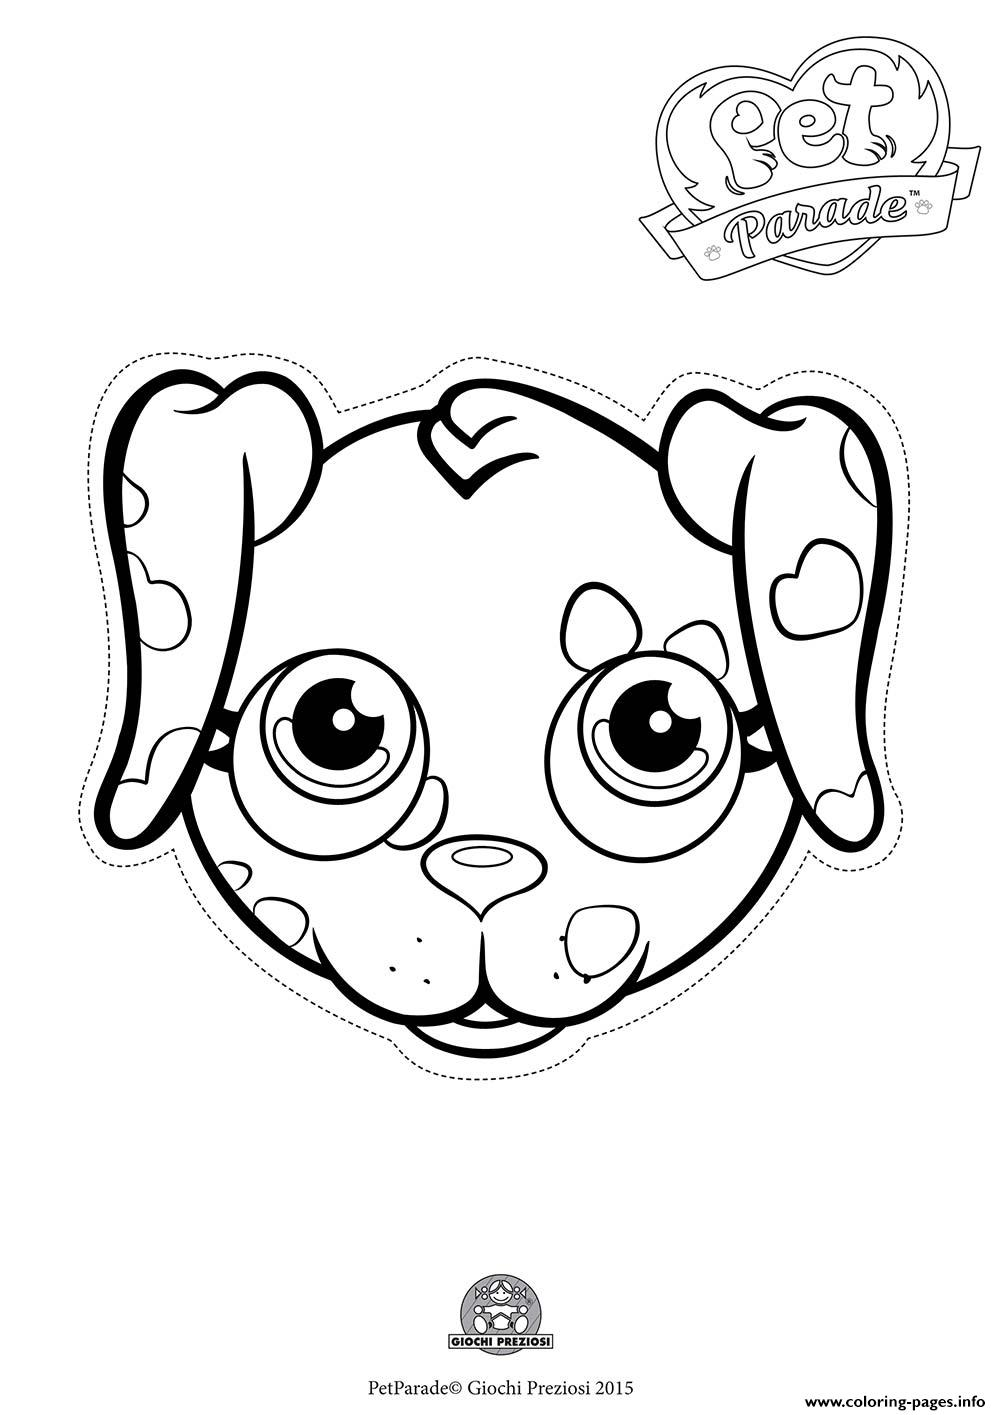 Pet Parade Cute Dog Dalmatian 2 Coloring Pages Printable